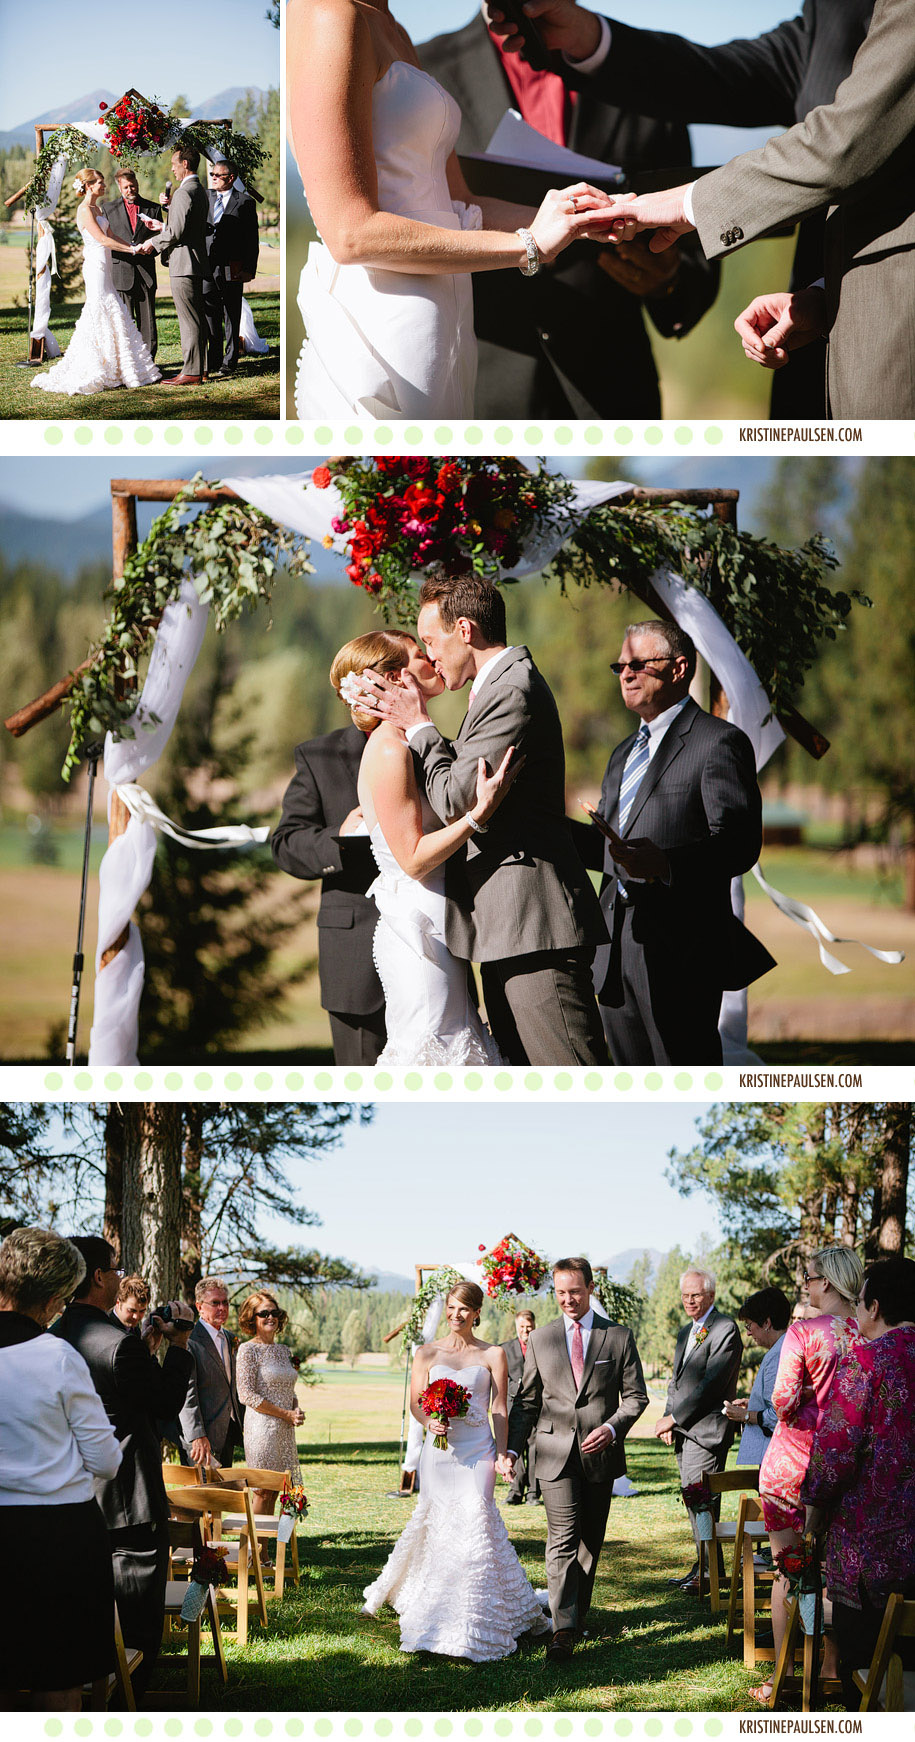 Breezy And Beautiful Sara And Ryans Seeley Lake Wedding Kristine Paulsen Photography